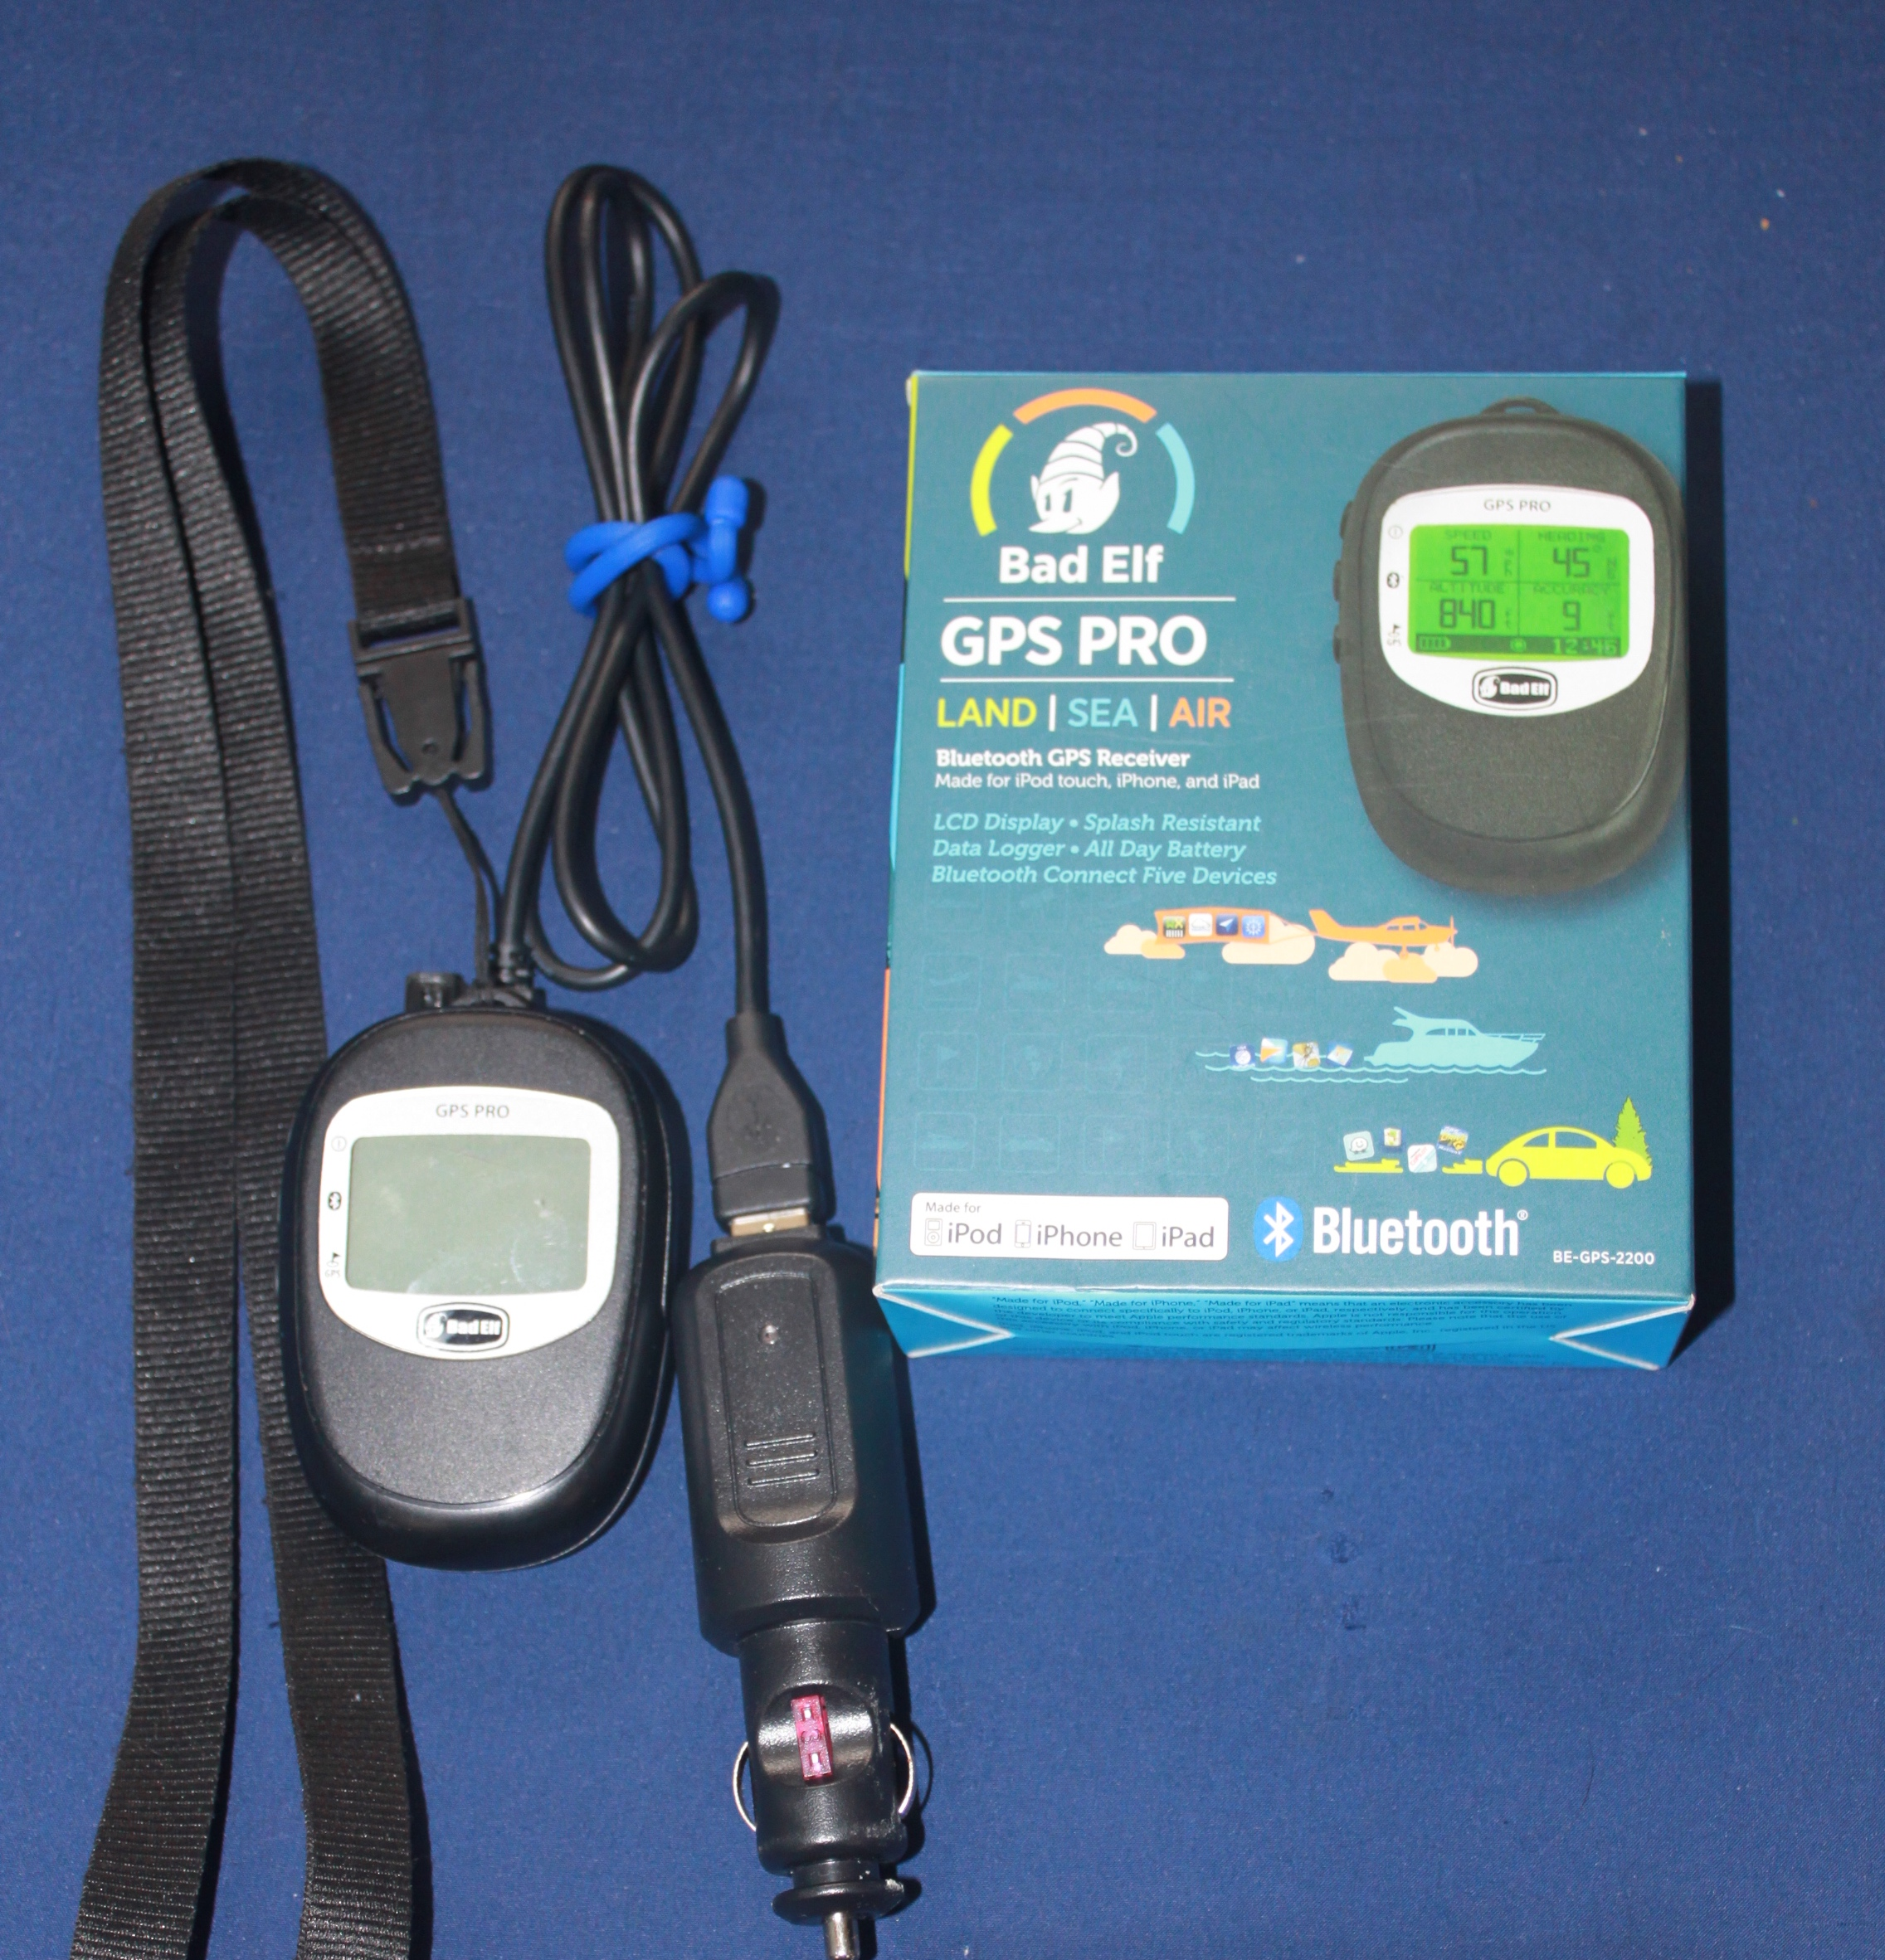 Review of the Bad Elf GPS Pro Bluetooth GPS Reciever - TinySails